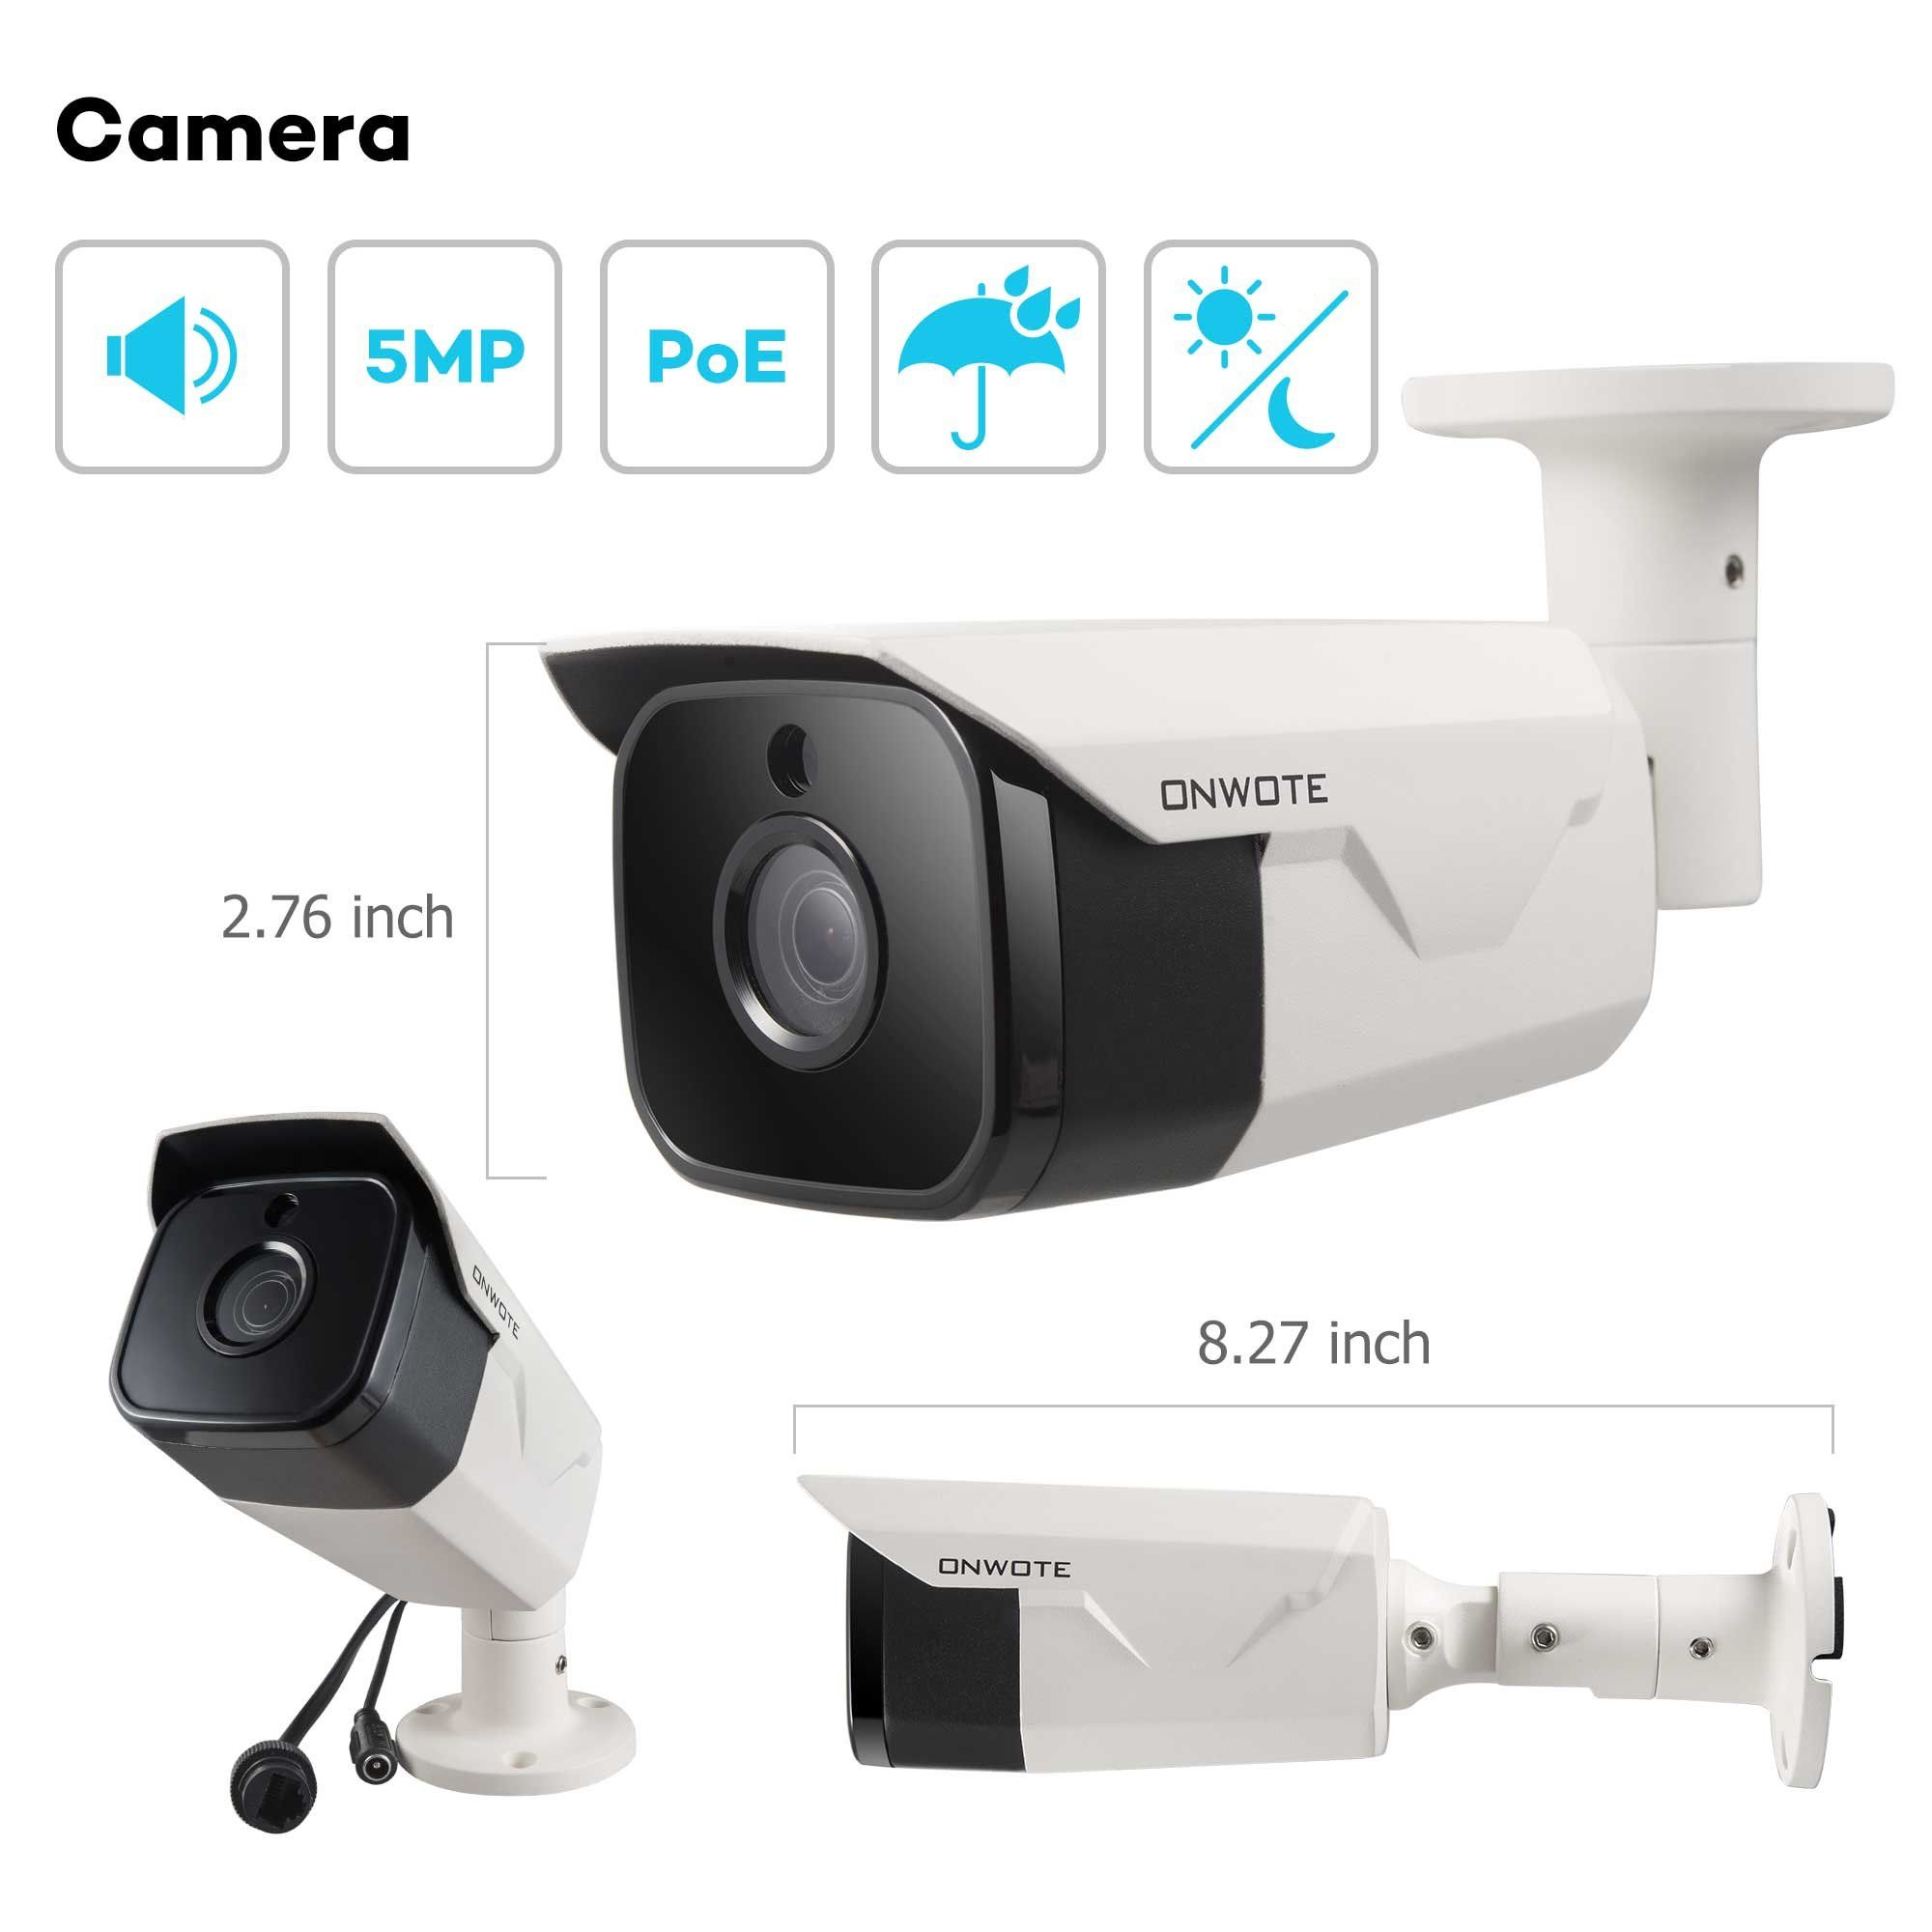 690a87ade3d ONWOTE 8CH Audio 5MP PoE Security Camera System with 2TB Hard Drive 8  Channel 5MP HD H.265 NVR 4 Outdoor 5MP 2592x1944P HD IP Cameras 100ft Night  Vision Add ...